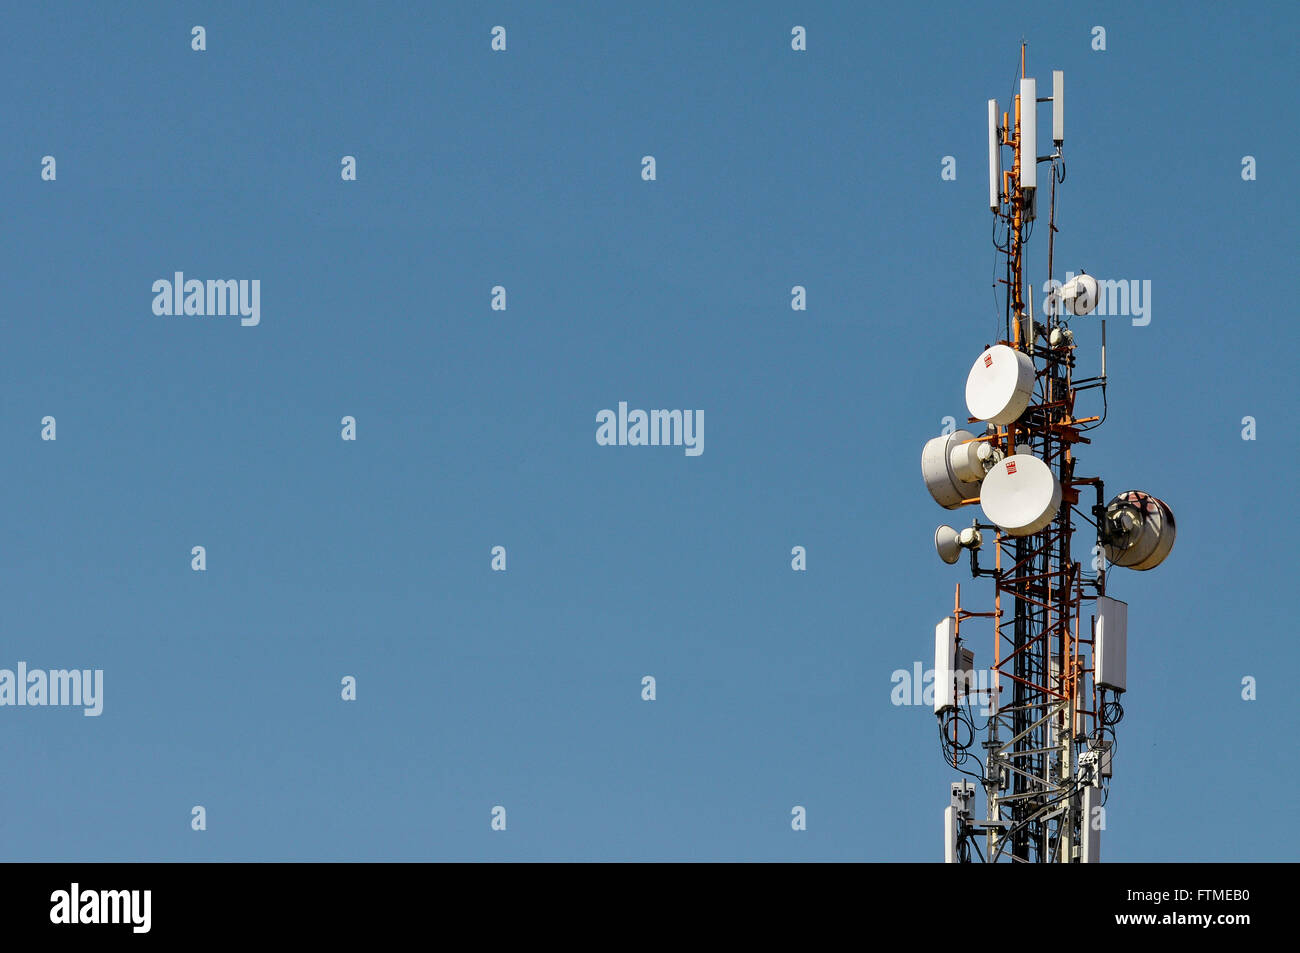 Cell phone tower - Stock Image